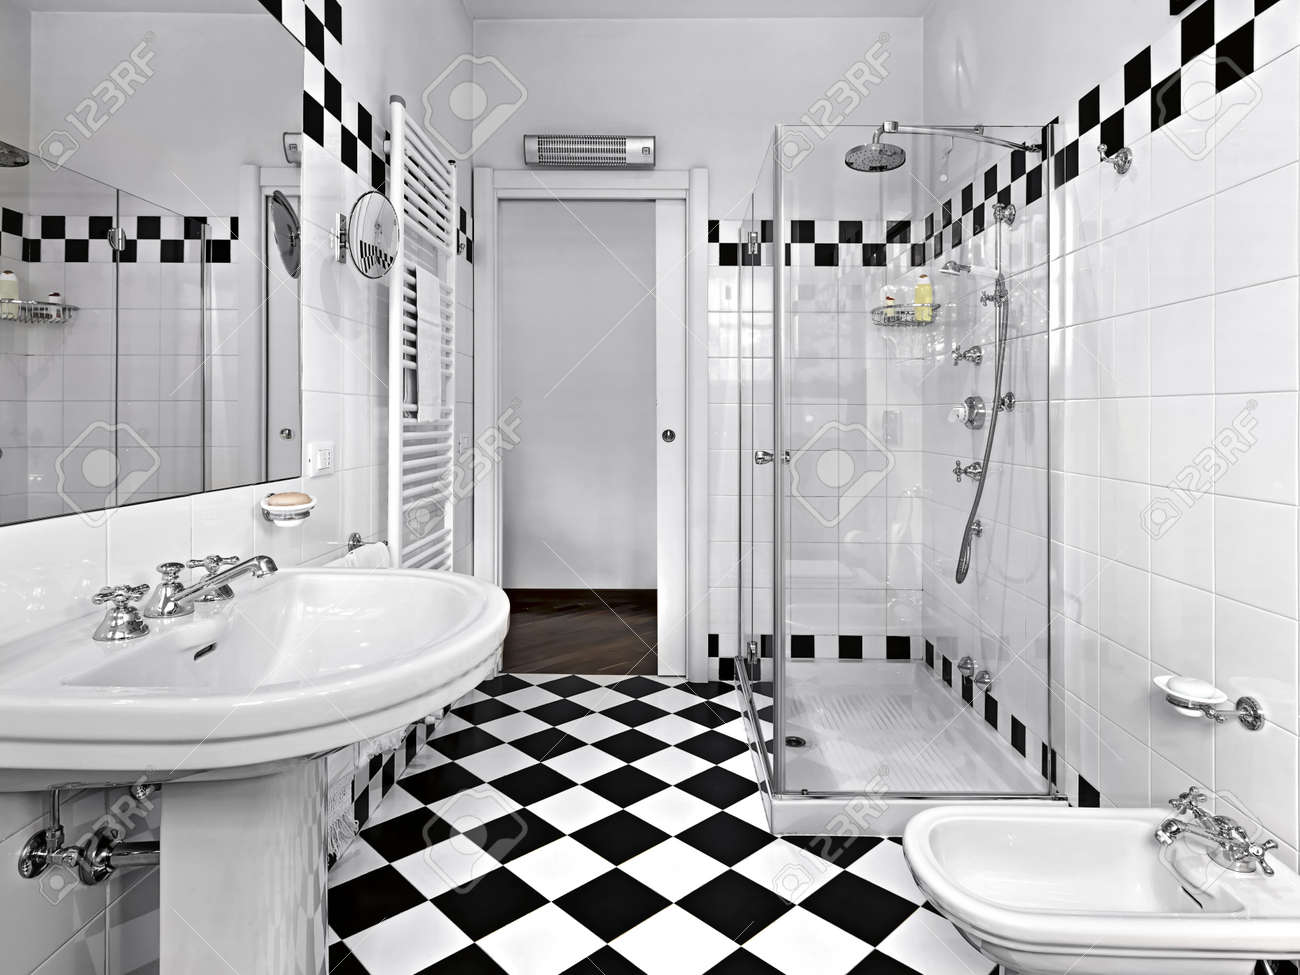 black and white bathrooms ~ dact